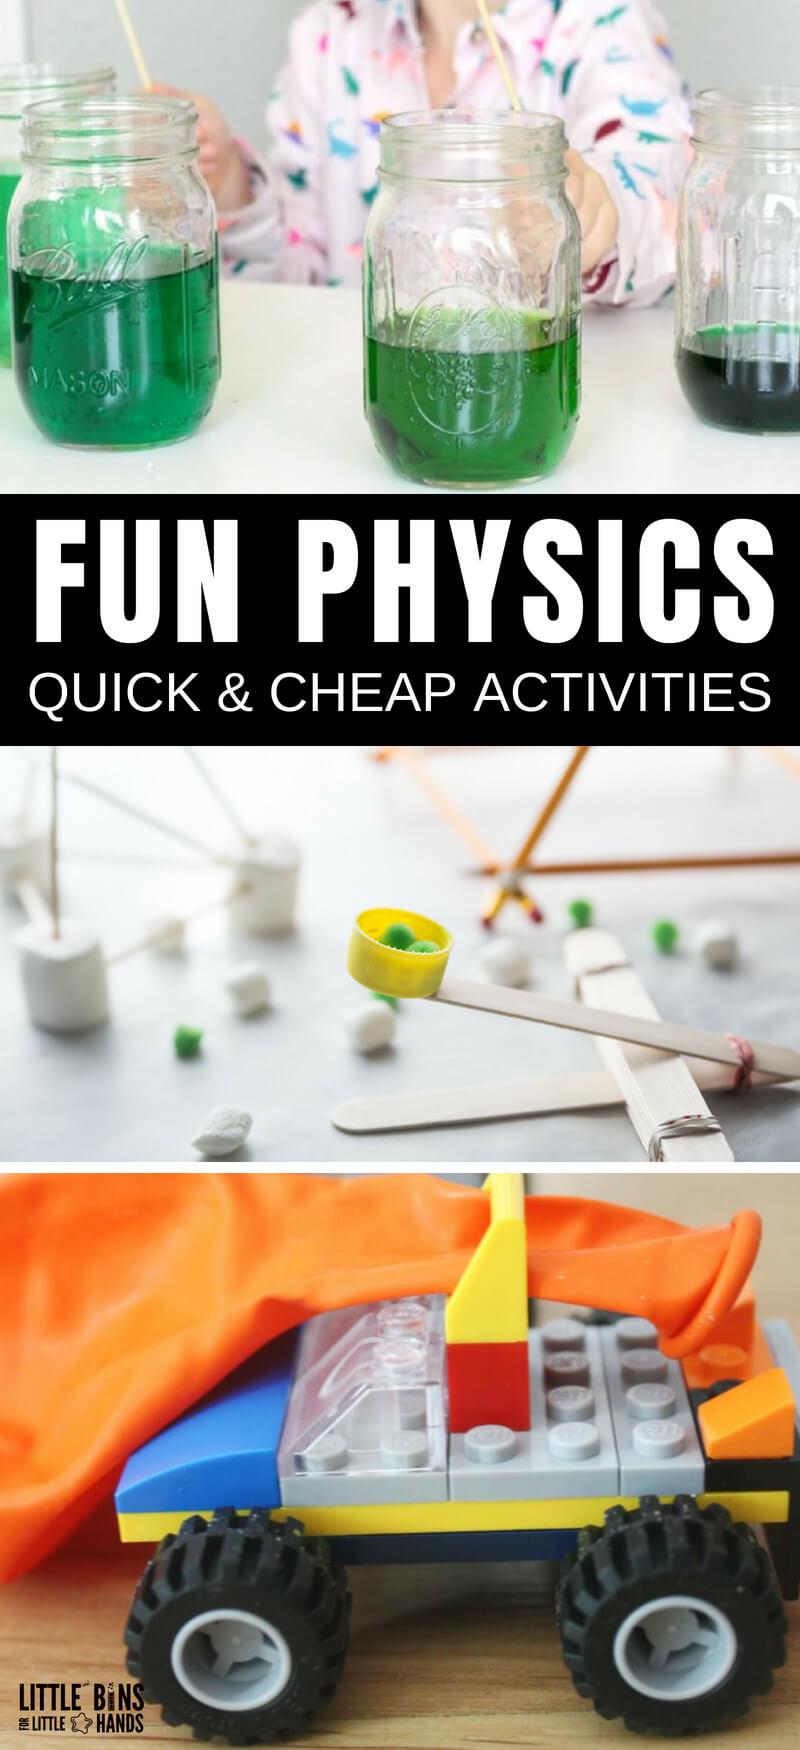 Simple Physics Experiments For Kids | Little Bins for Little Hands